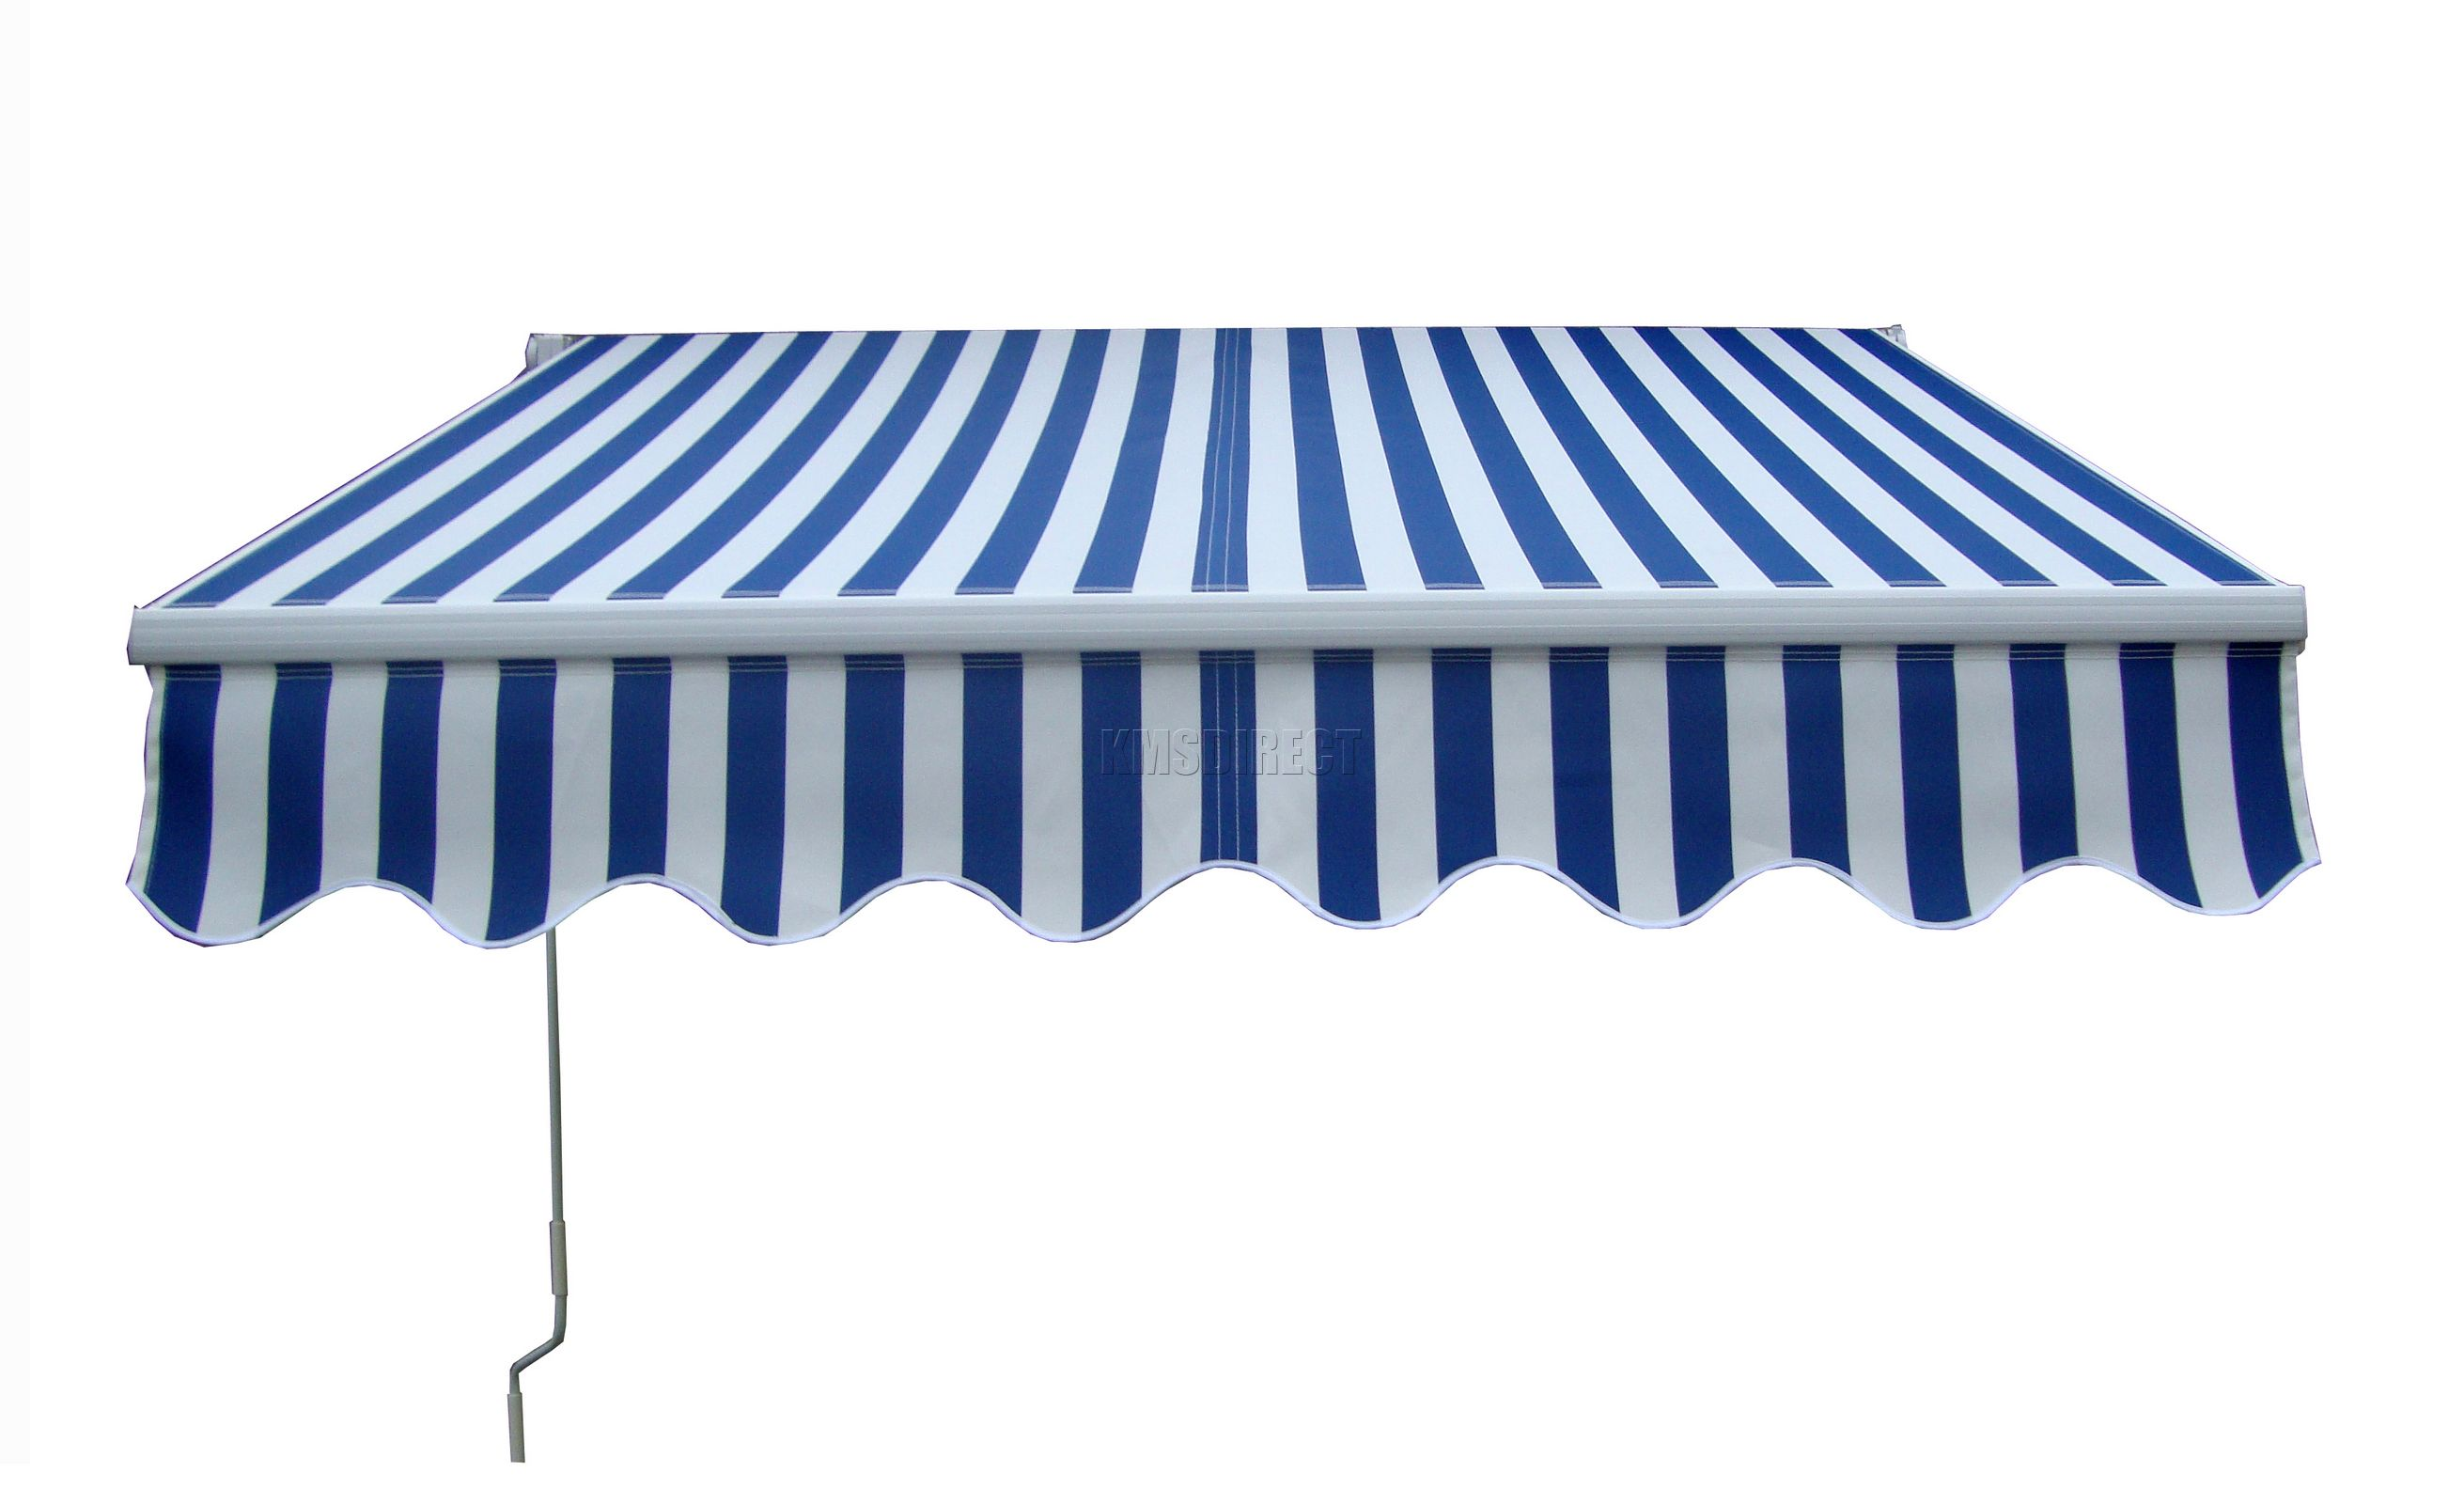 Patio Manual Retractable Awning Canopy Sun Shade Shelter Blue